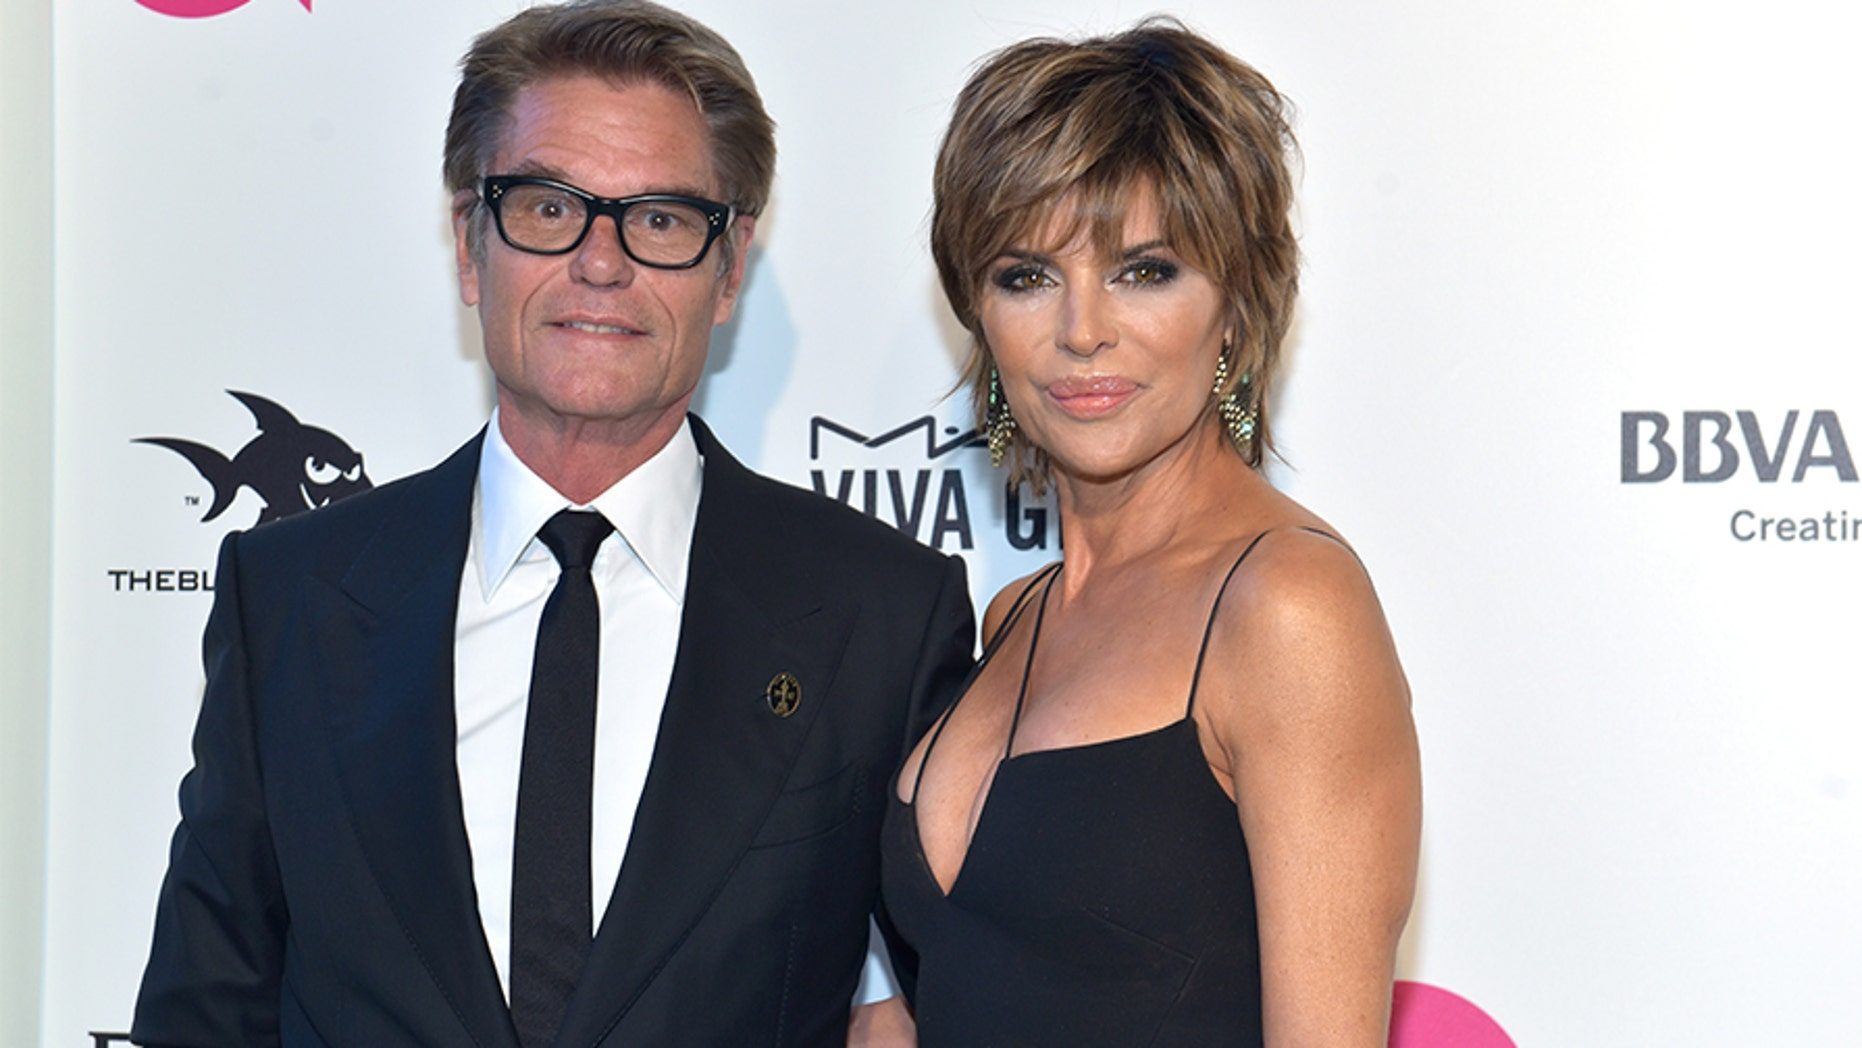 Harry Hamlin and Lisa Rinna attend the 26th annual Elton John AIDS Foundation's Academy Awards Viewing Party on March 4, 2018 in West Hollywood, Calif. — Photo by Rodin Eckenroth/Getty Images